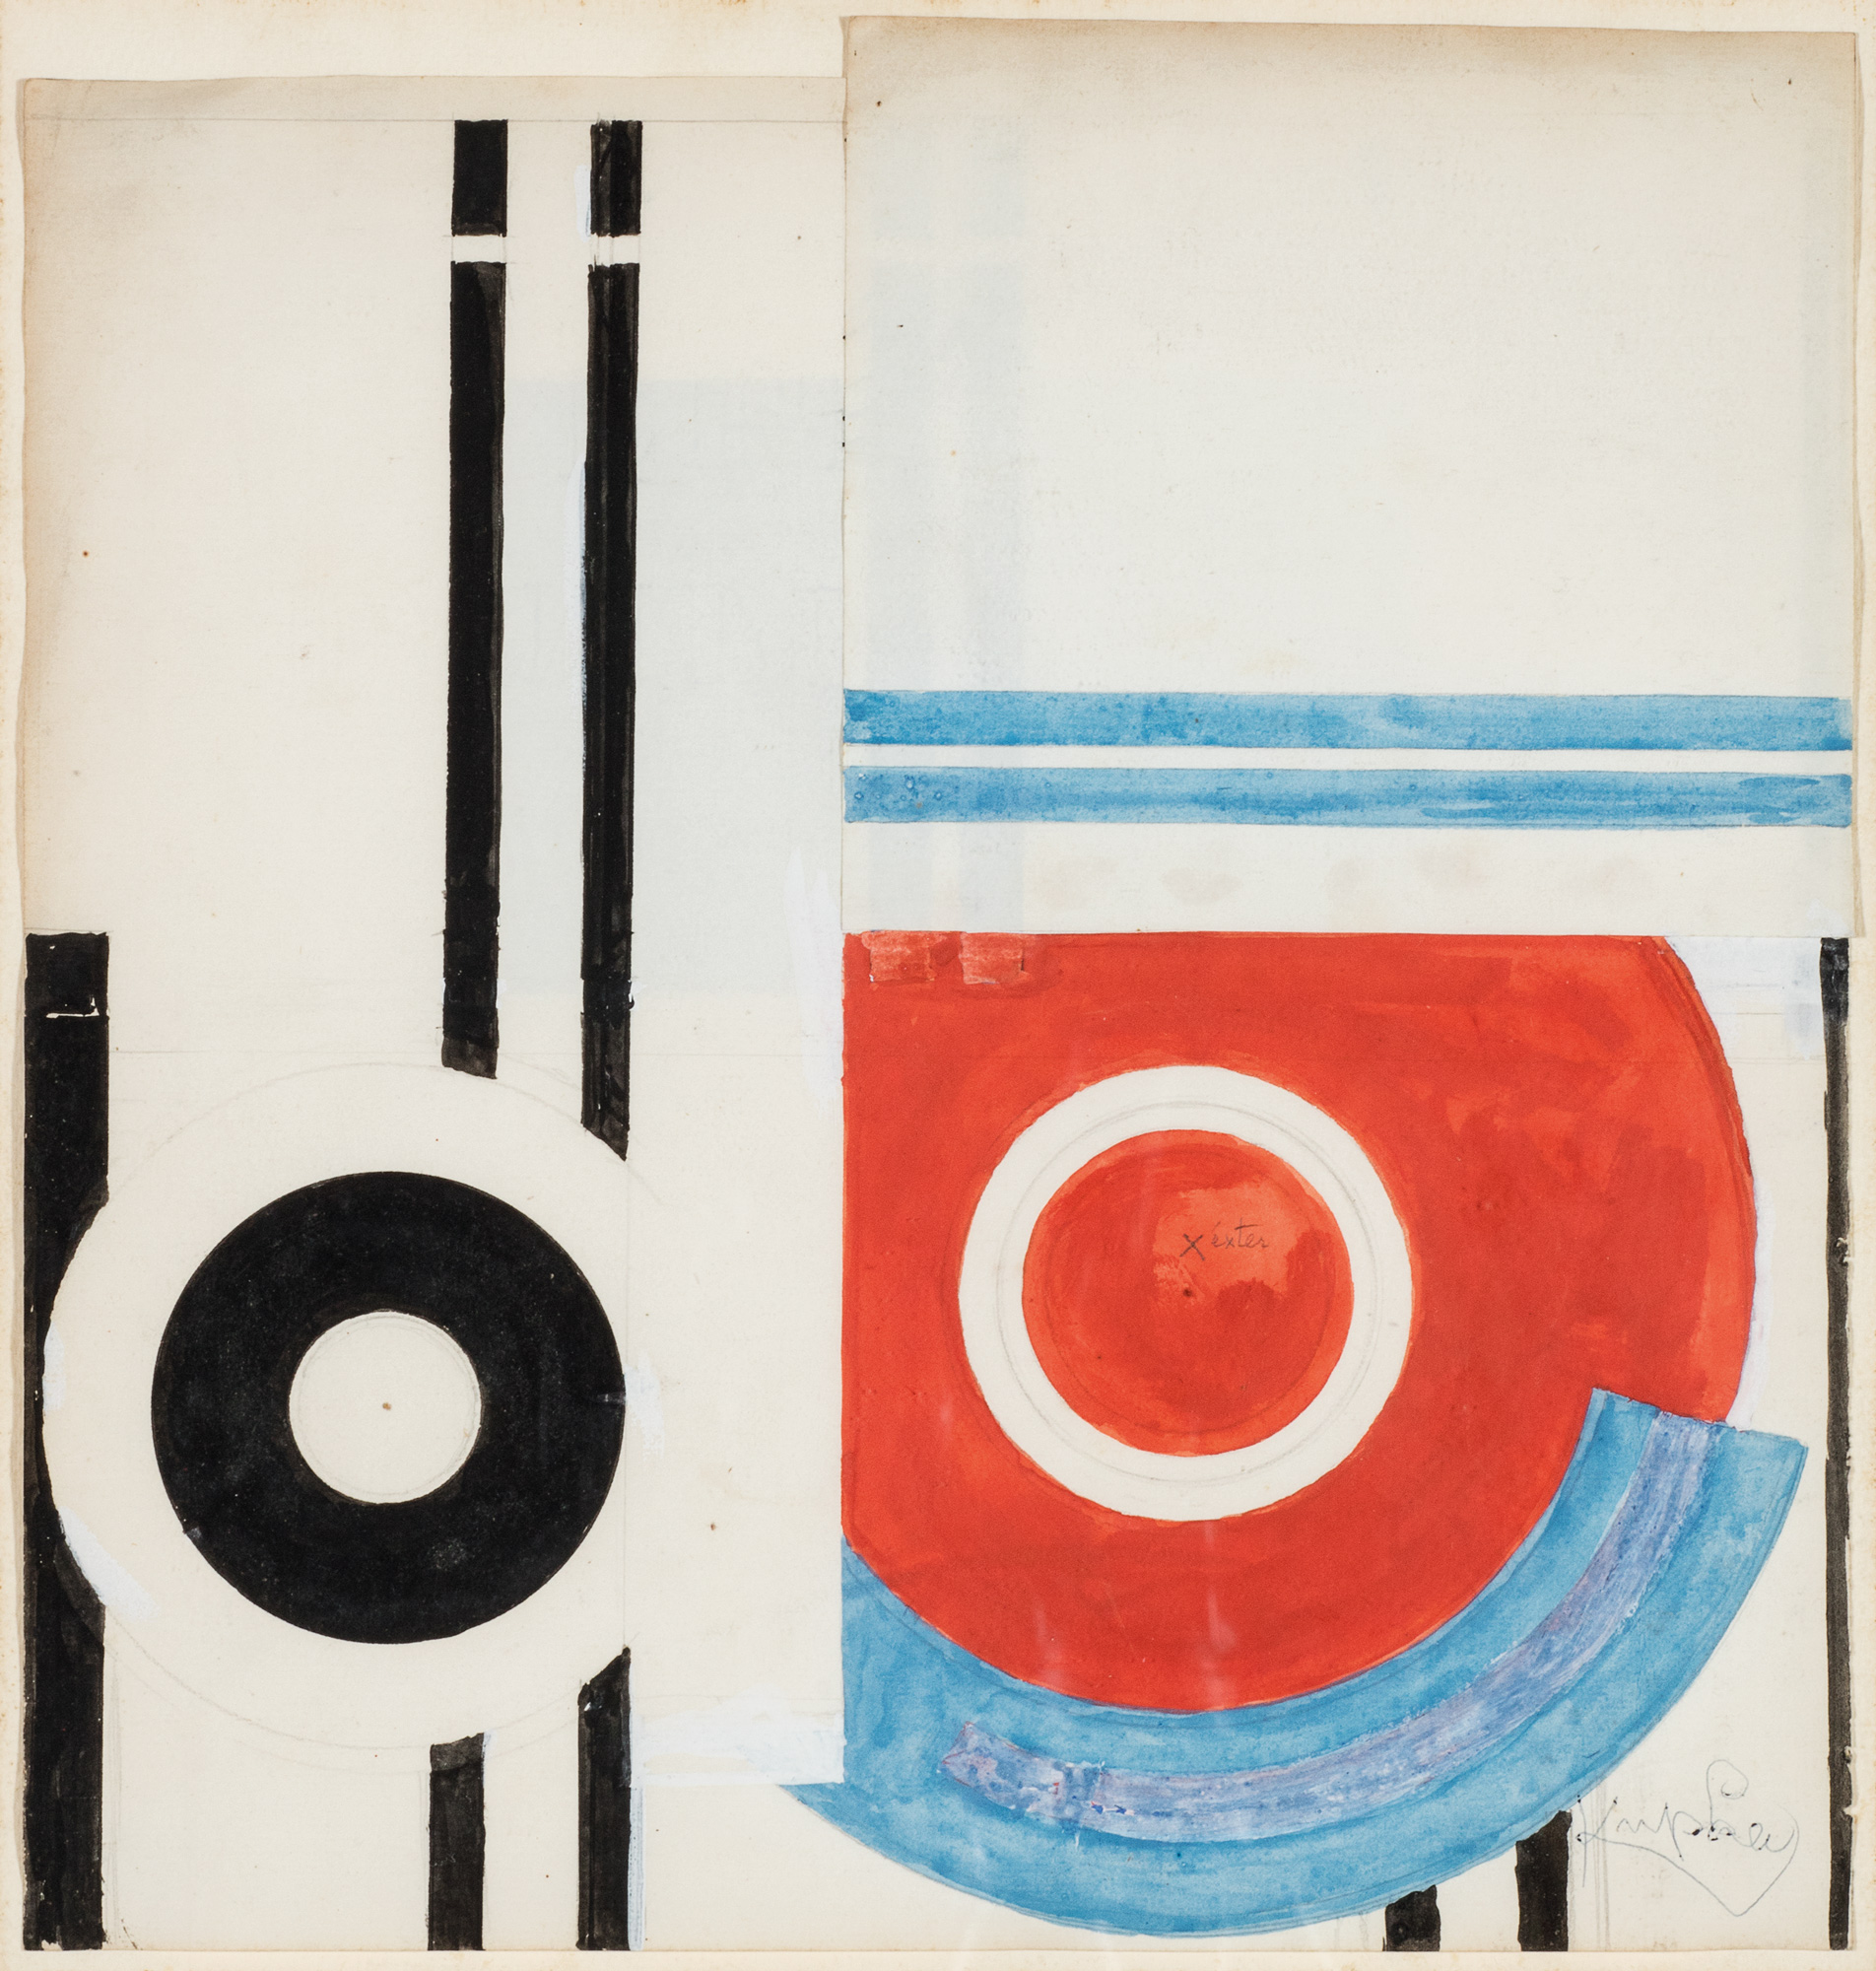 Frantisek Kupka, Disques et traits noir, 1932, Lotto 247, Minerva Auctions